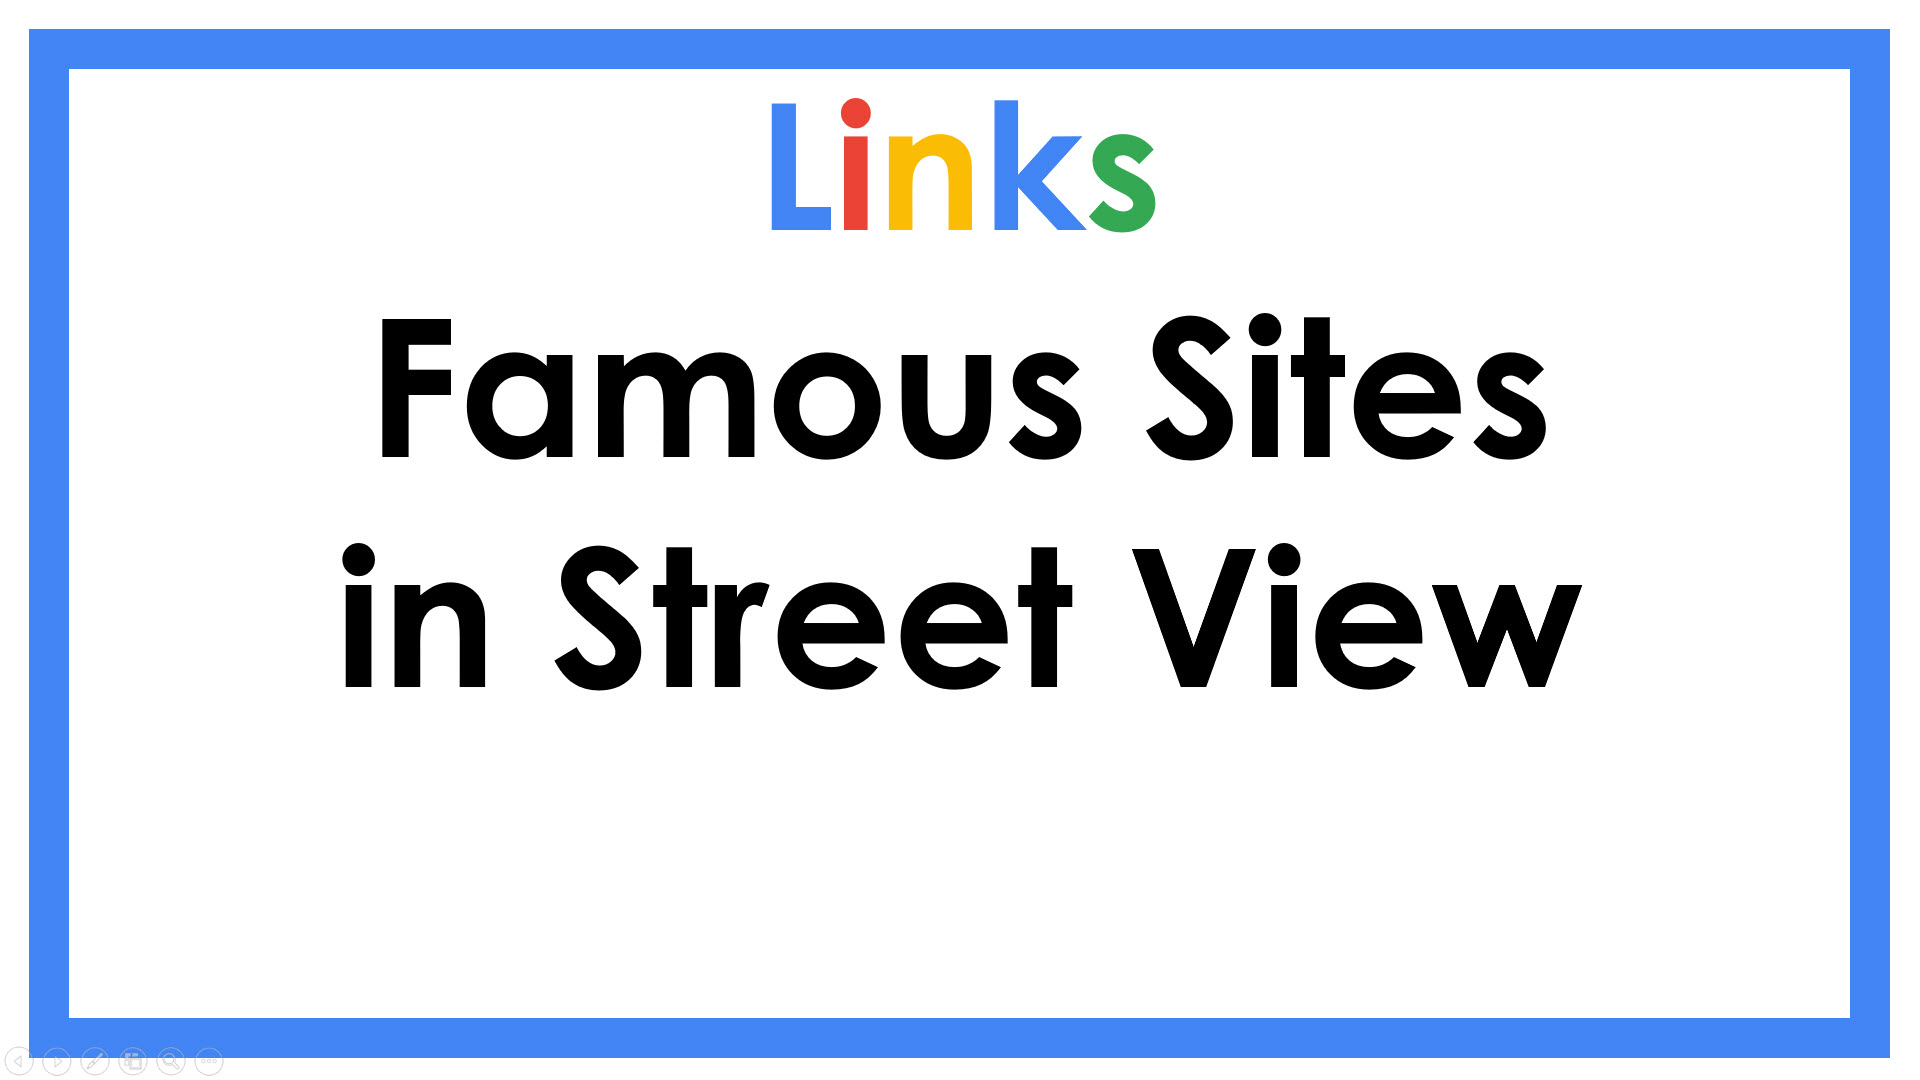 Famous sites in Street View